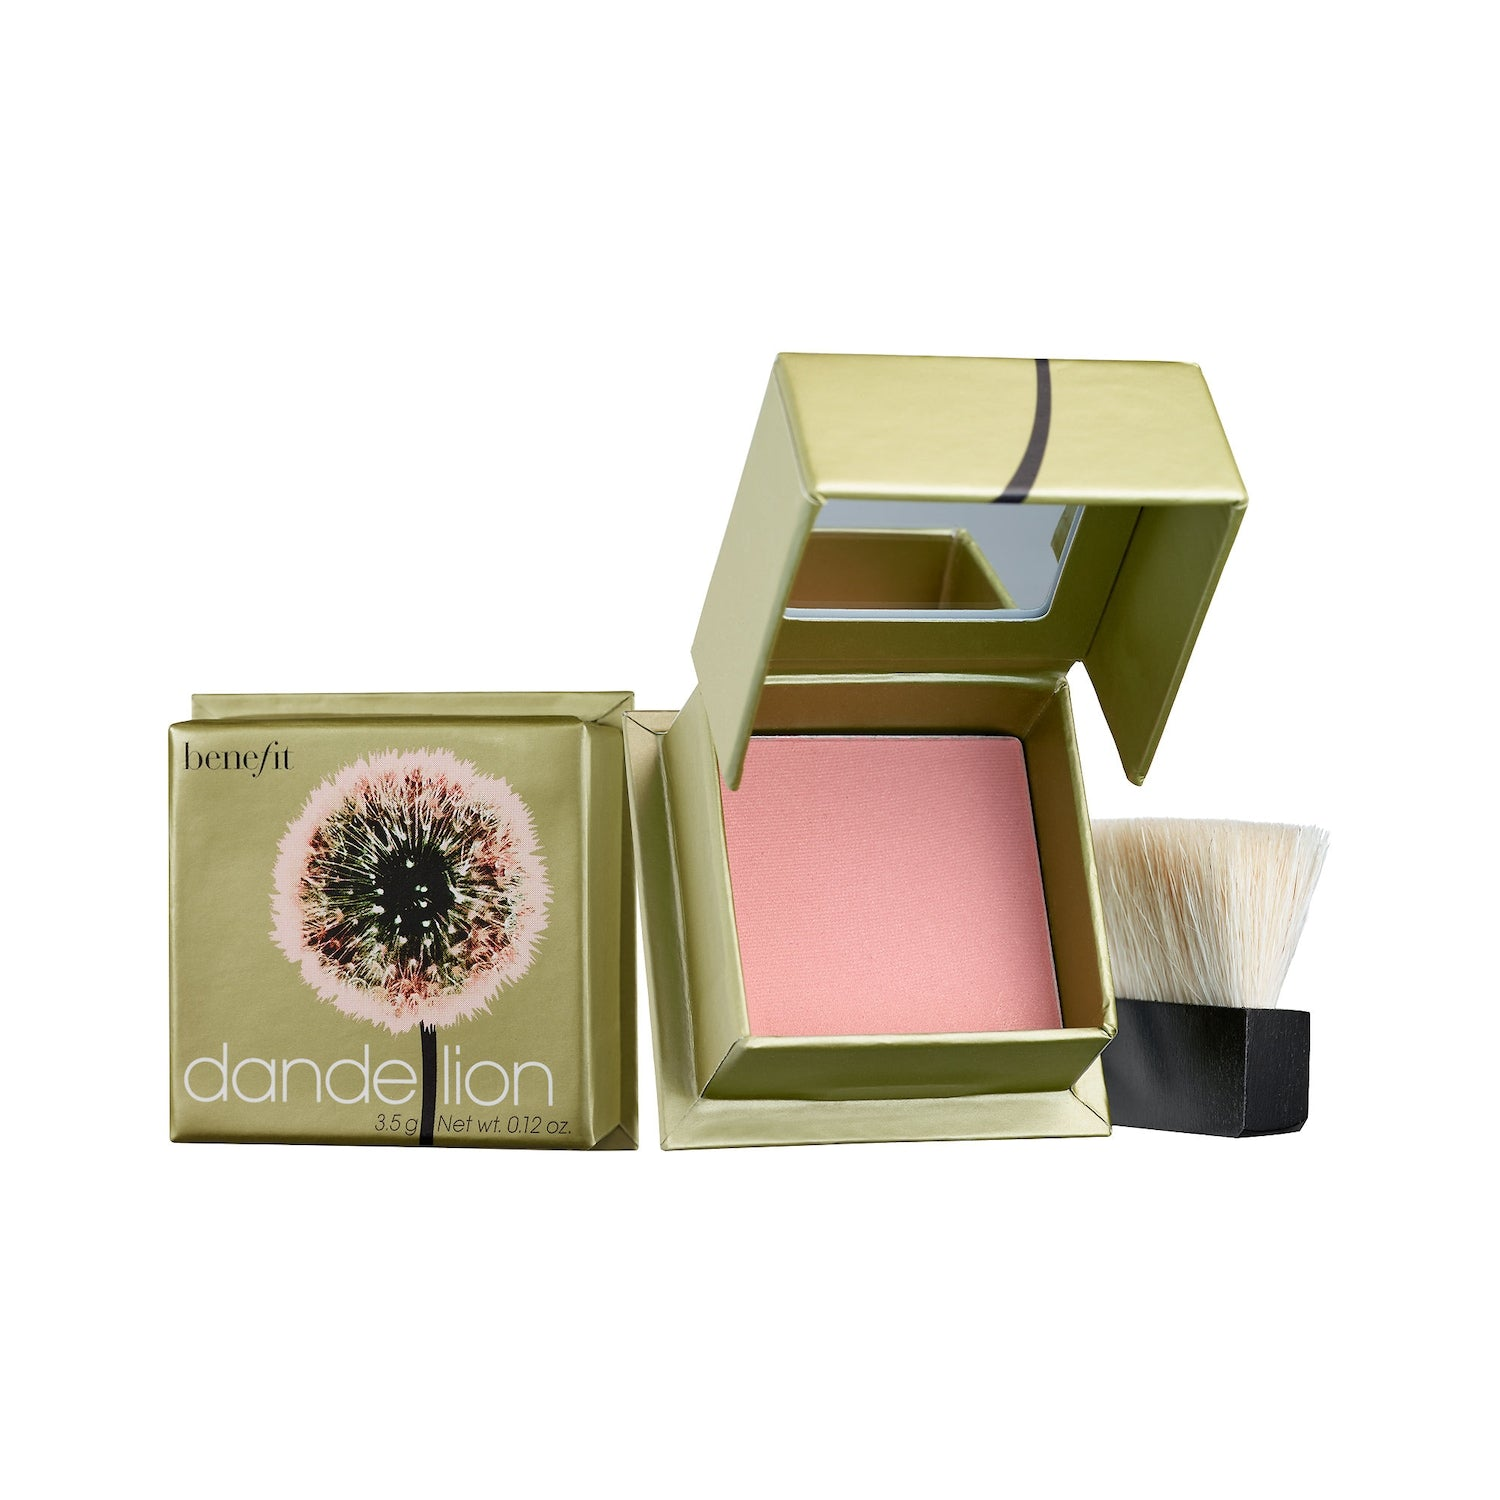 Benefit Cosmetics Dandelion Box o' Powder Blush Mini,3.5g (Unboxed)